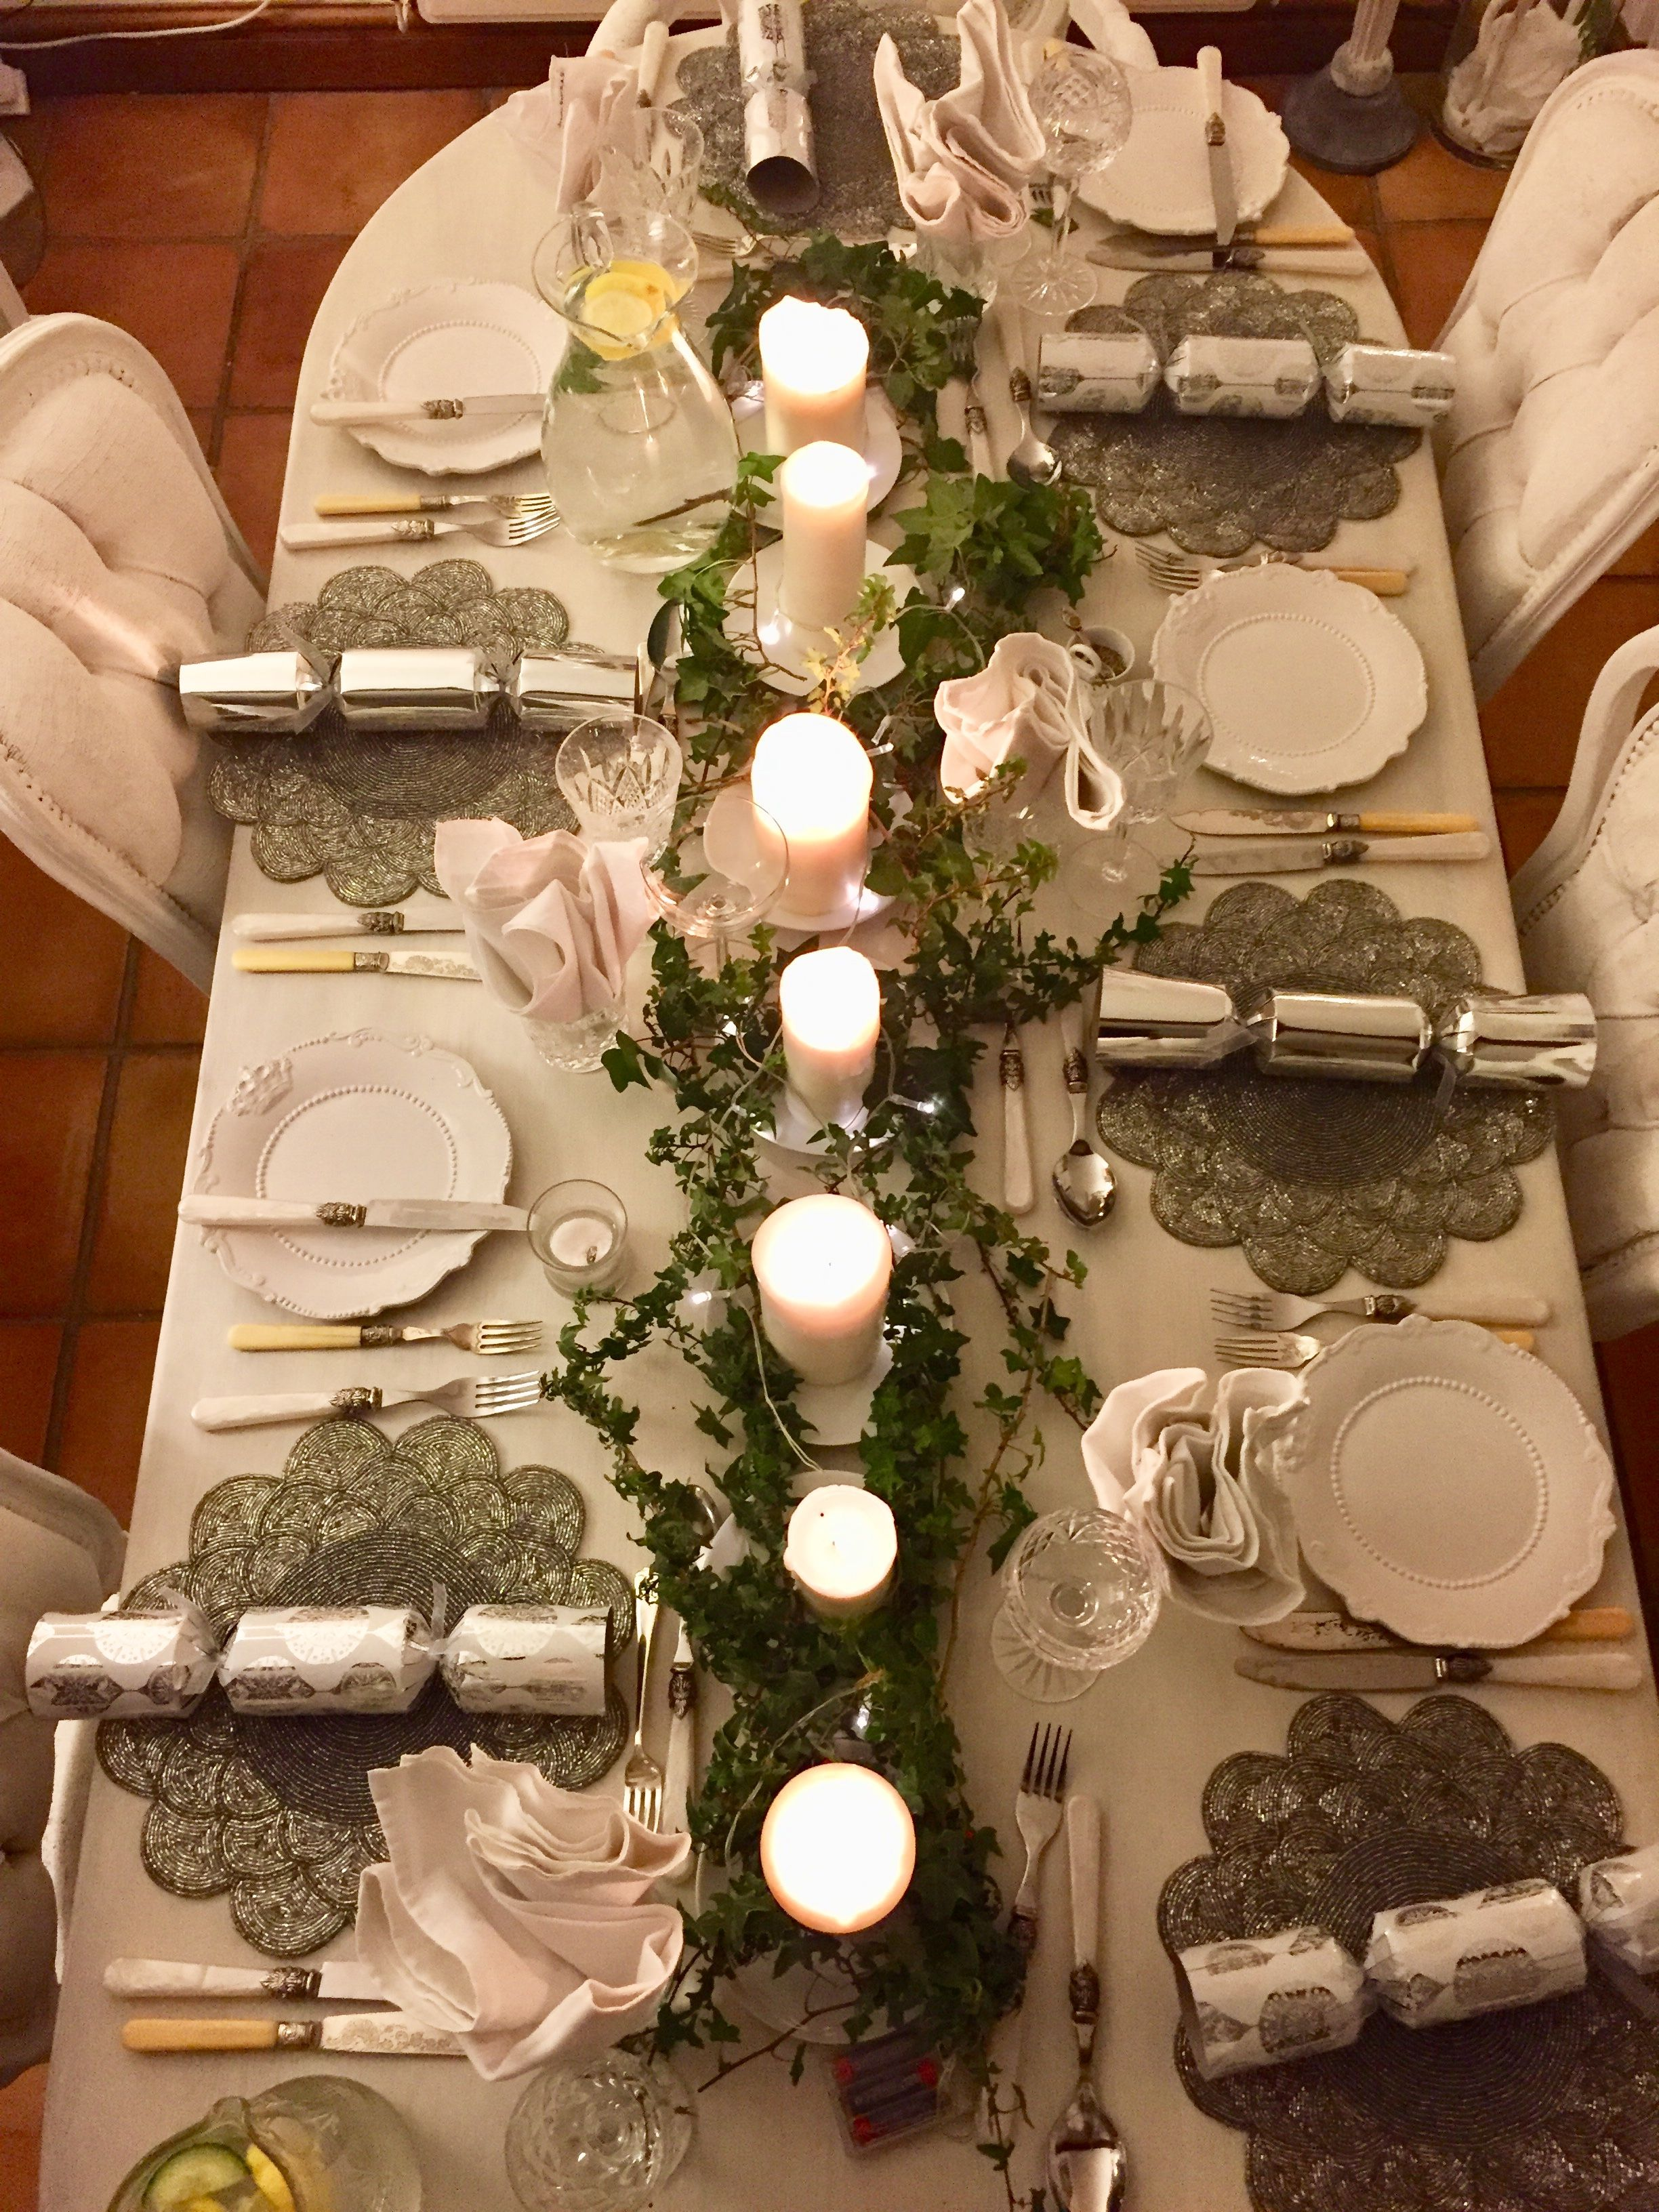 Silver And Candles Creates Understated Christmas Table By Www Anyabankschristmasdecorato Table Decorations Christmas Tablescapes Christmas Holidays